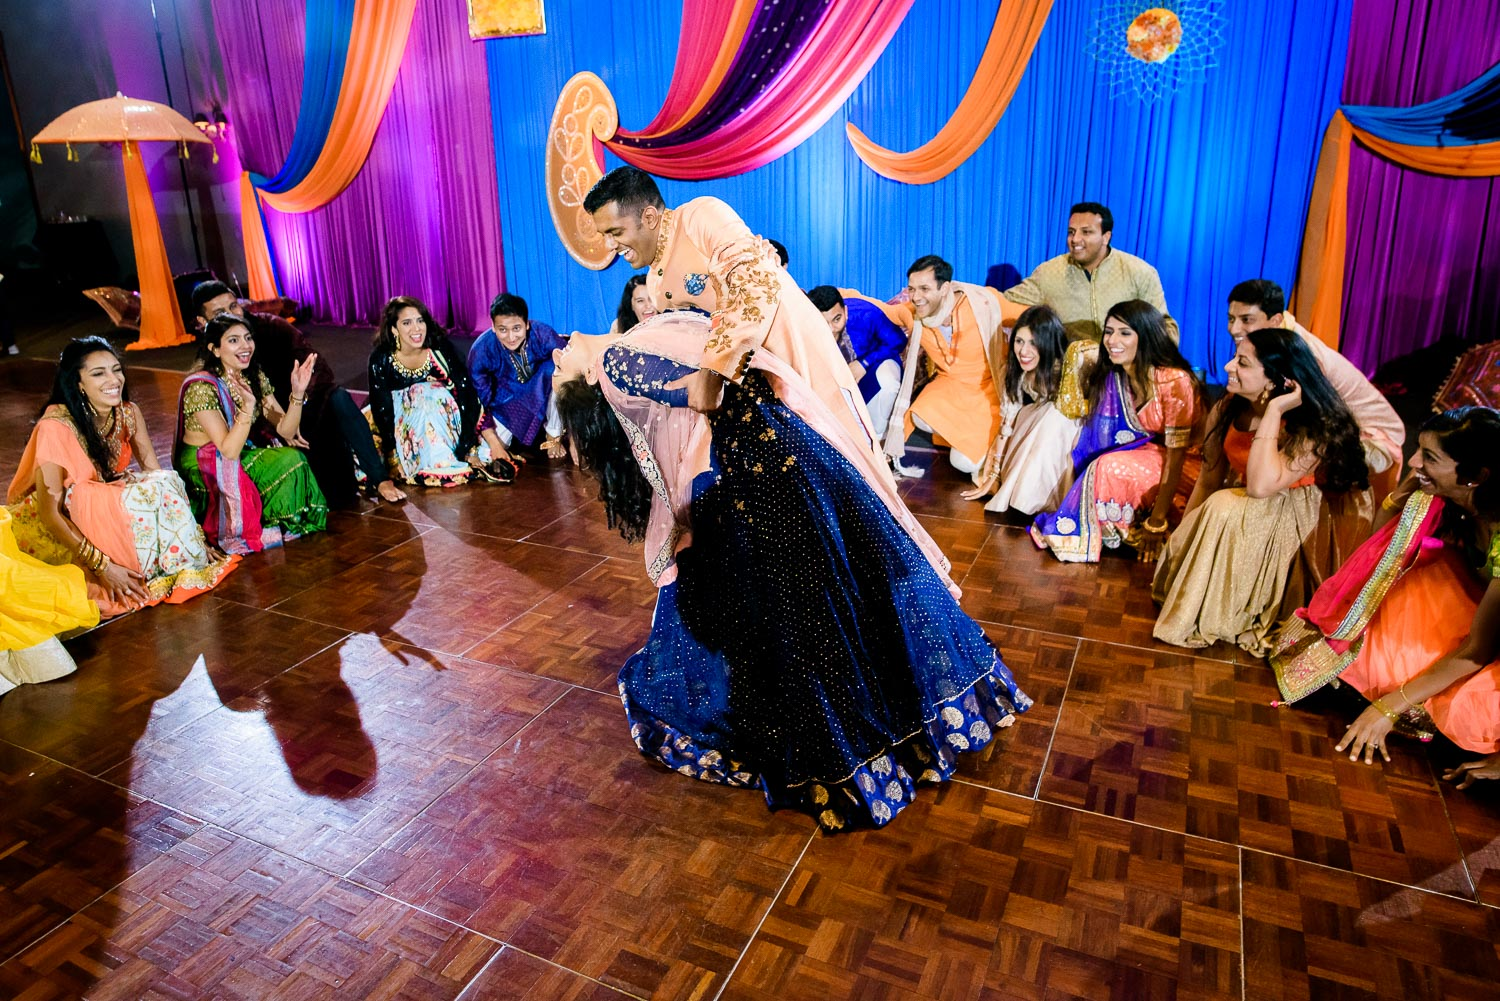 Wedding party dances during an Indian wedding sangeet at Stonegate Banquets in Hoffman Estates.